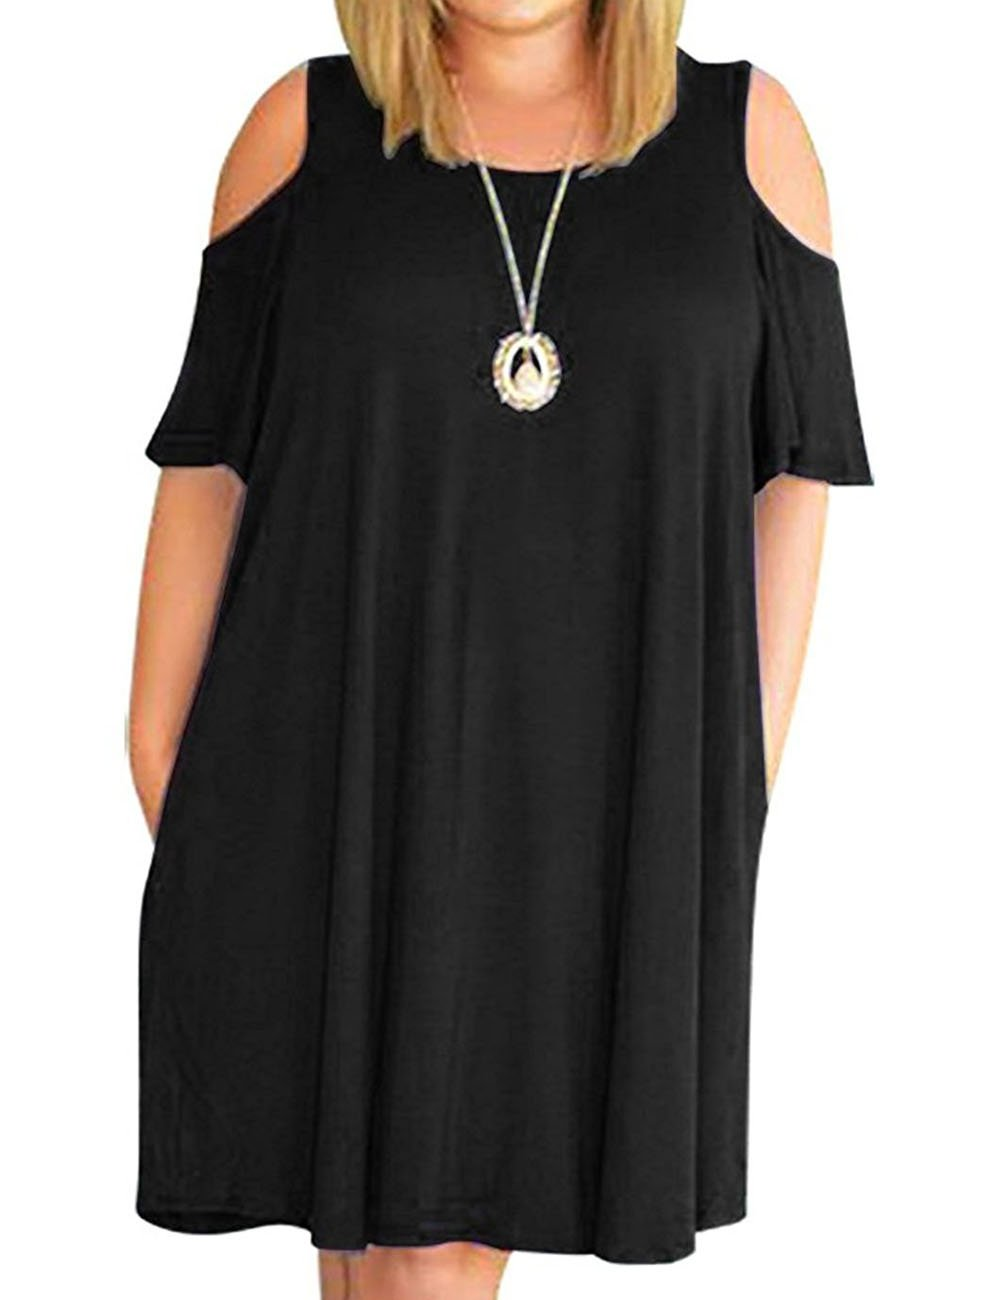 Kancystore Women\'s Plus Size Dress Summer Casual T-Shirt Cold ...